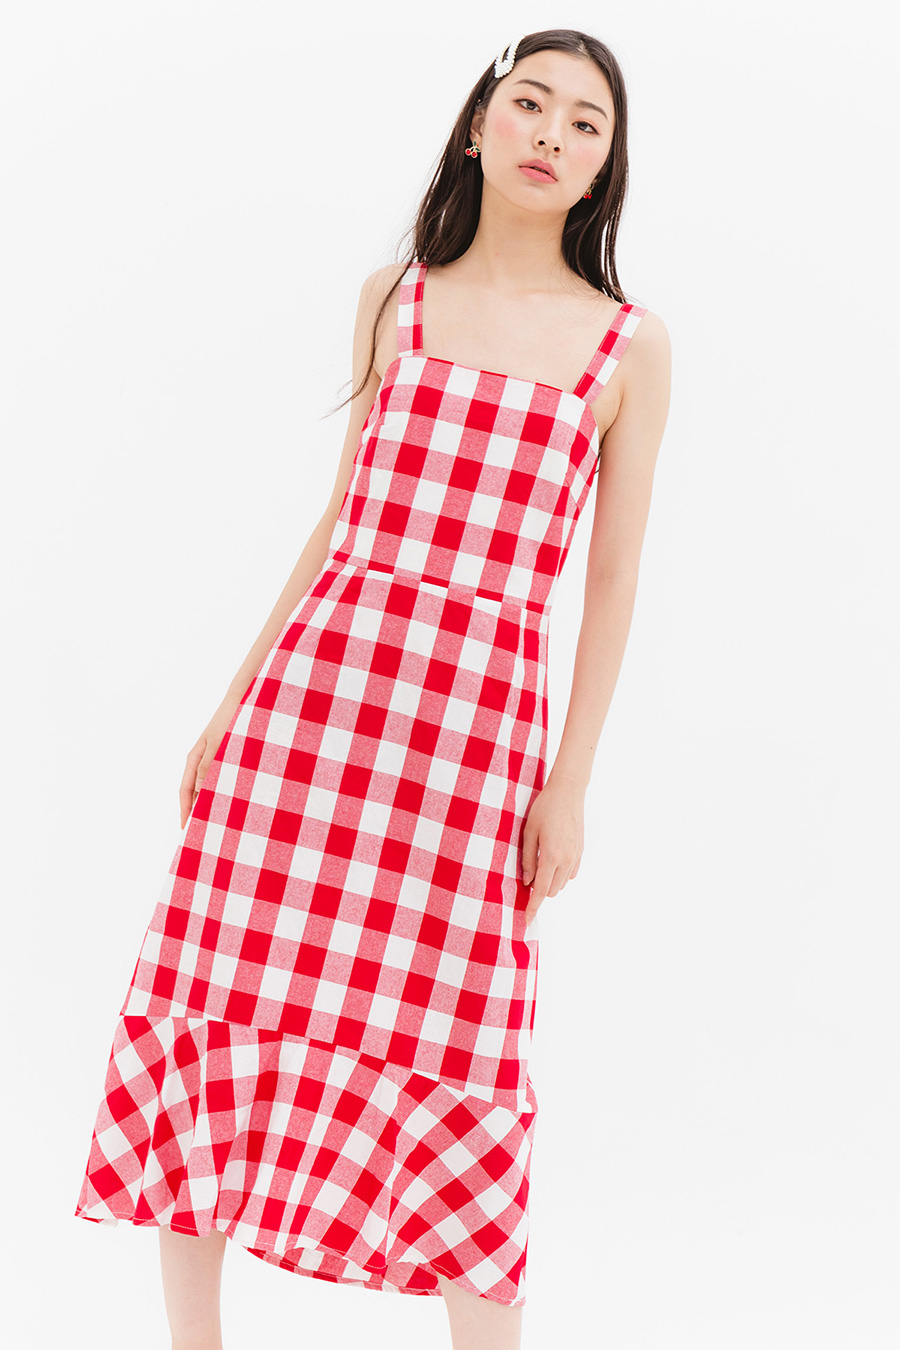 LOMITA DRESS - CHERRY HAM